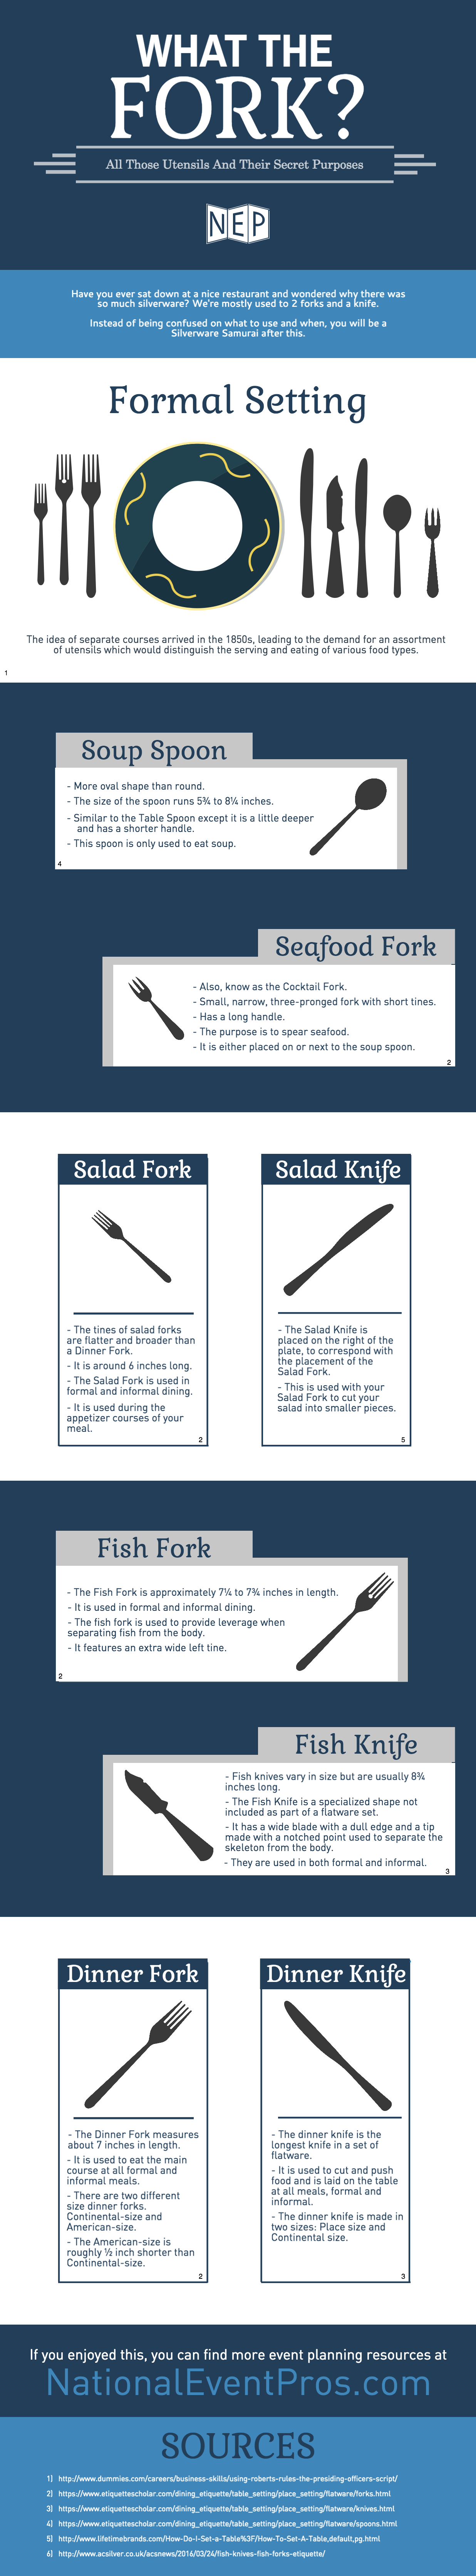 Infographic: What The Fork?